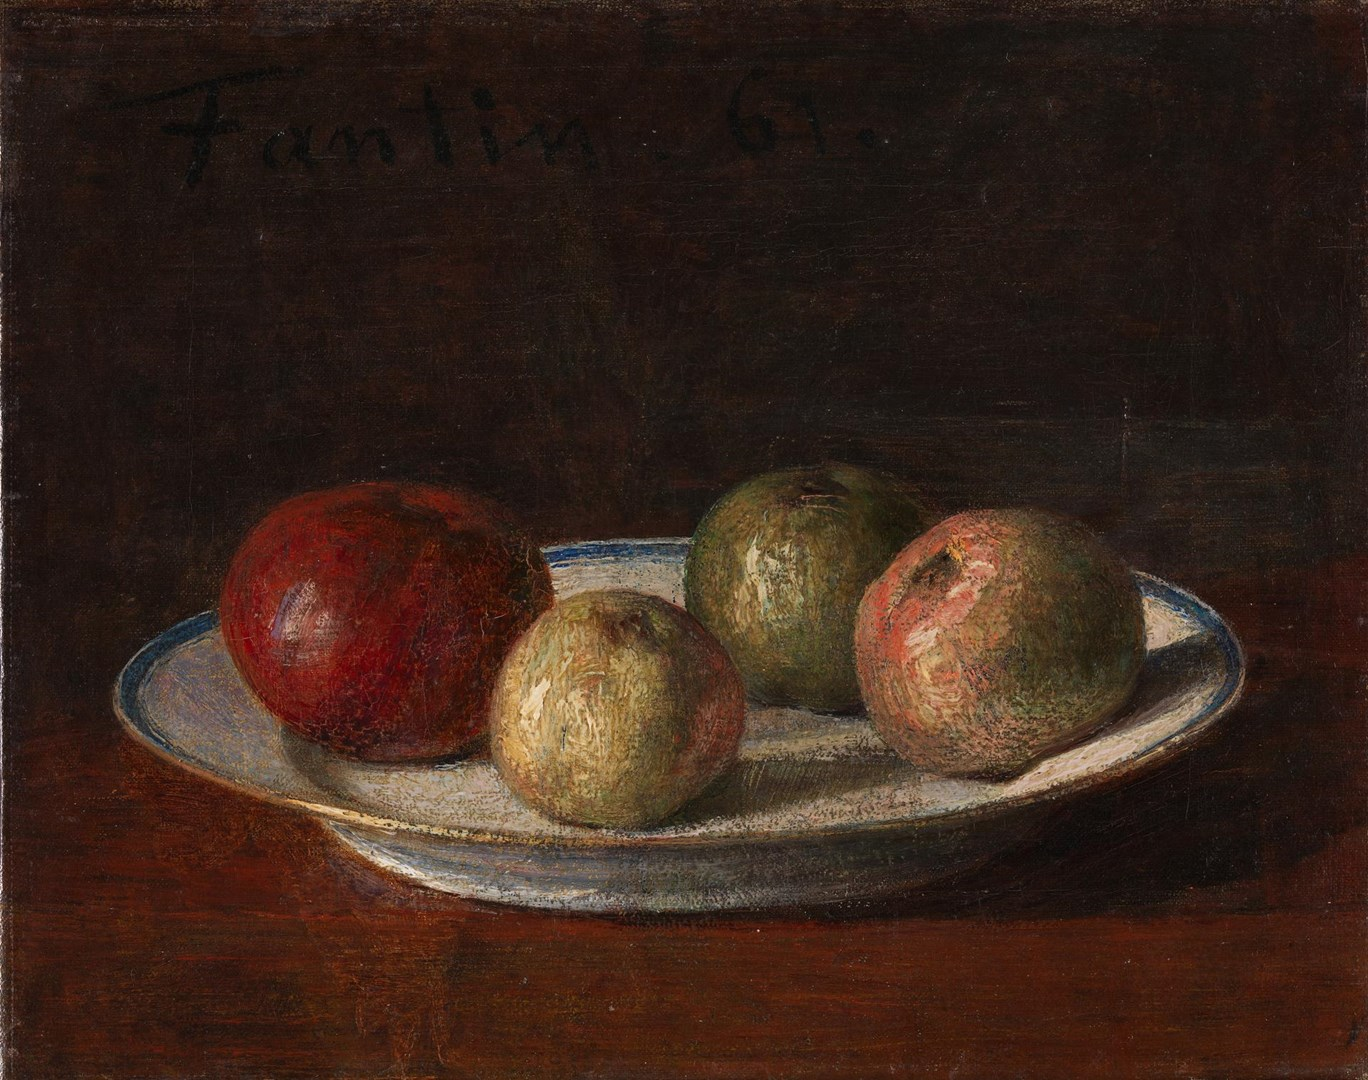 A Plate of Apples by Ignace-Henri-Théodore Fantin-Latour